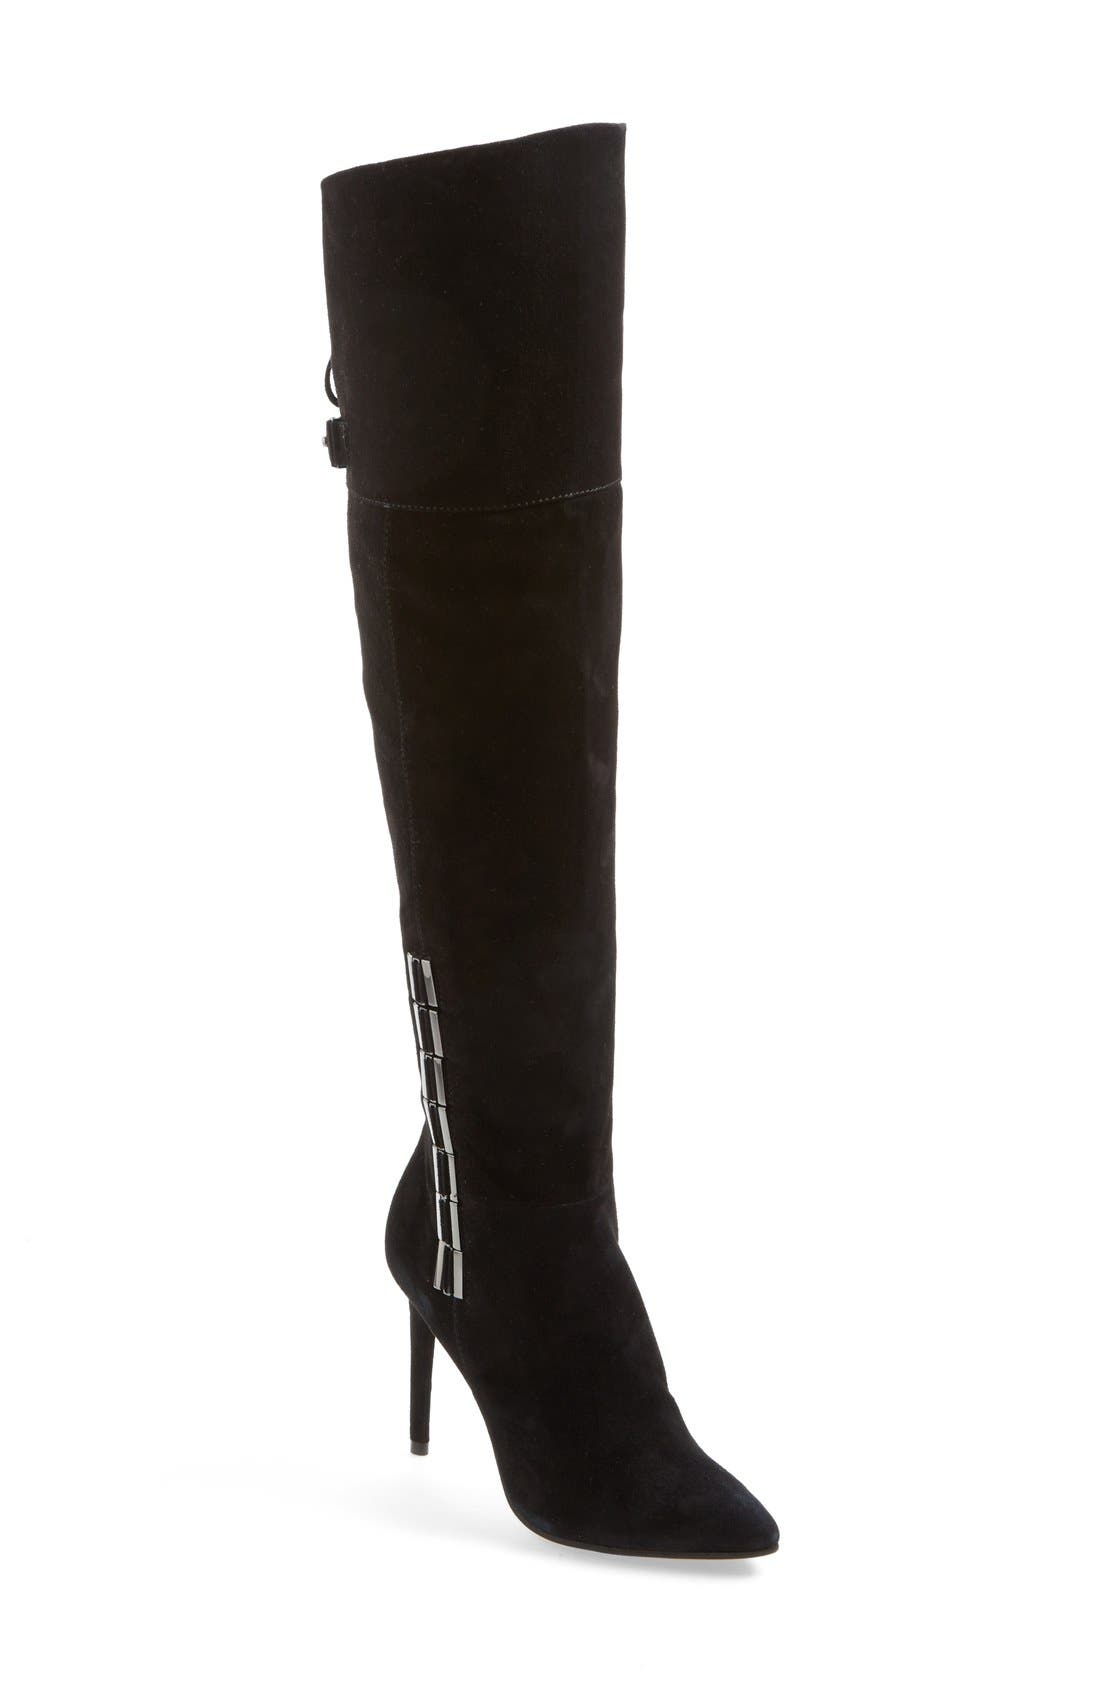 DOLCE VITA, 'Inara' Over the Knee Pointy Toe Suede Boot, Main thumbnail 1, color, 001